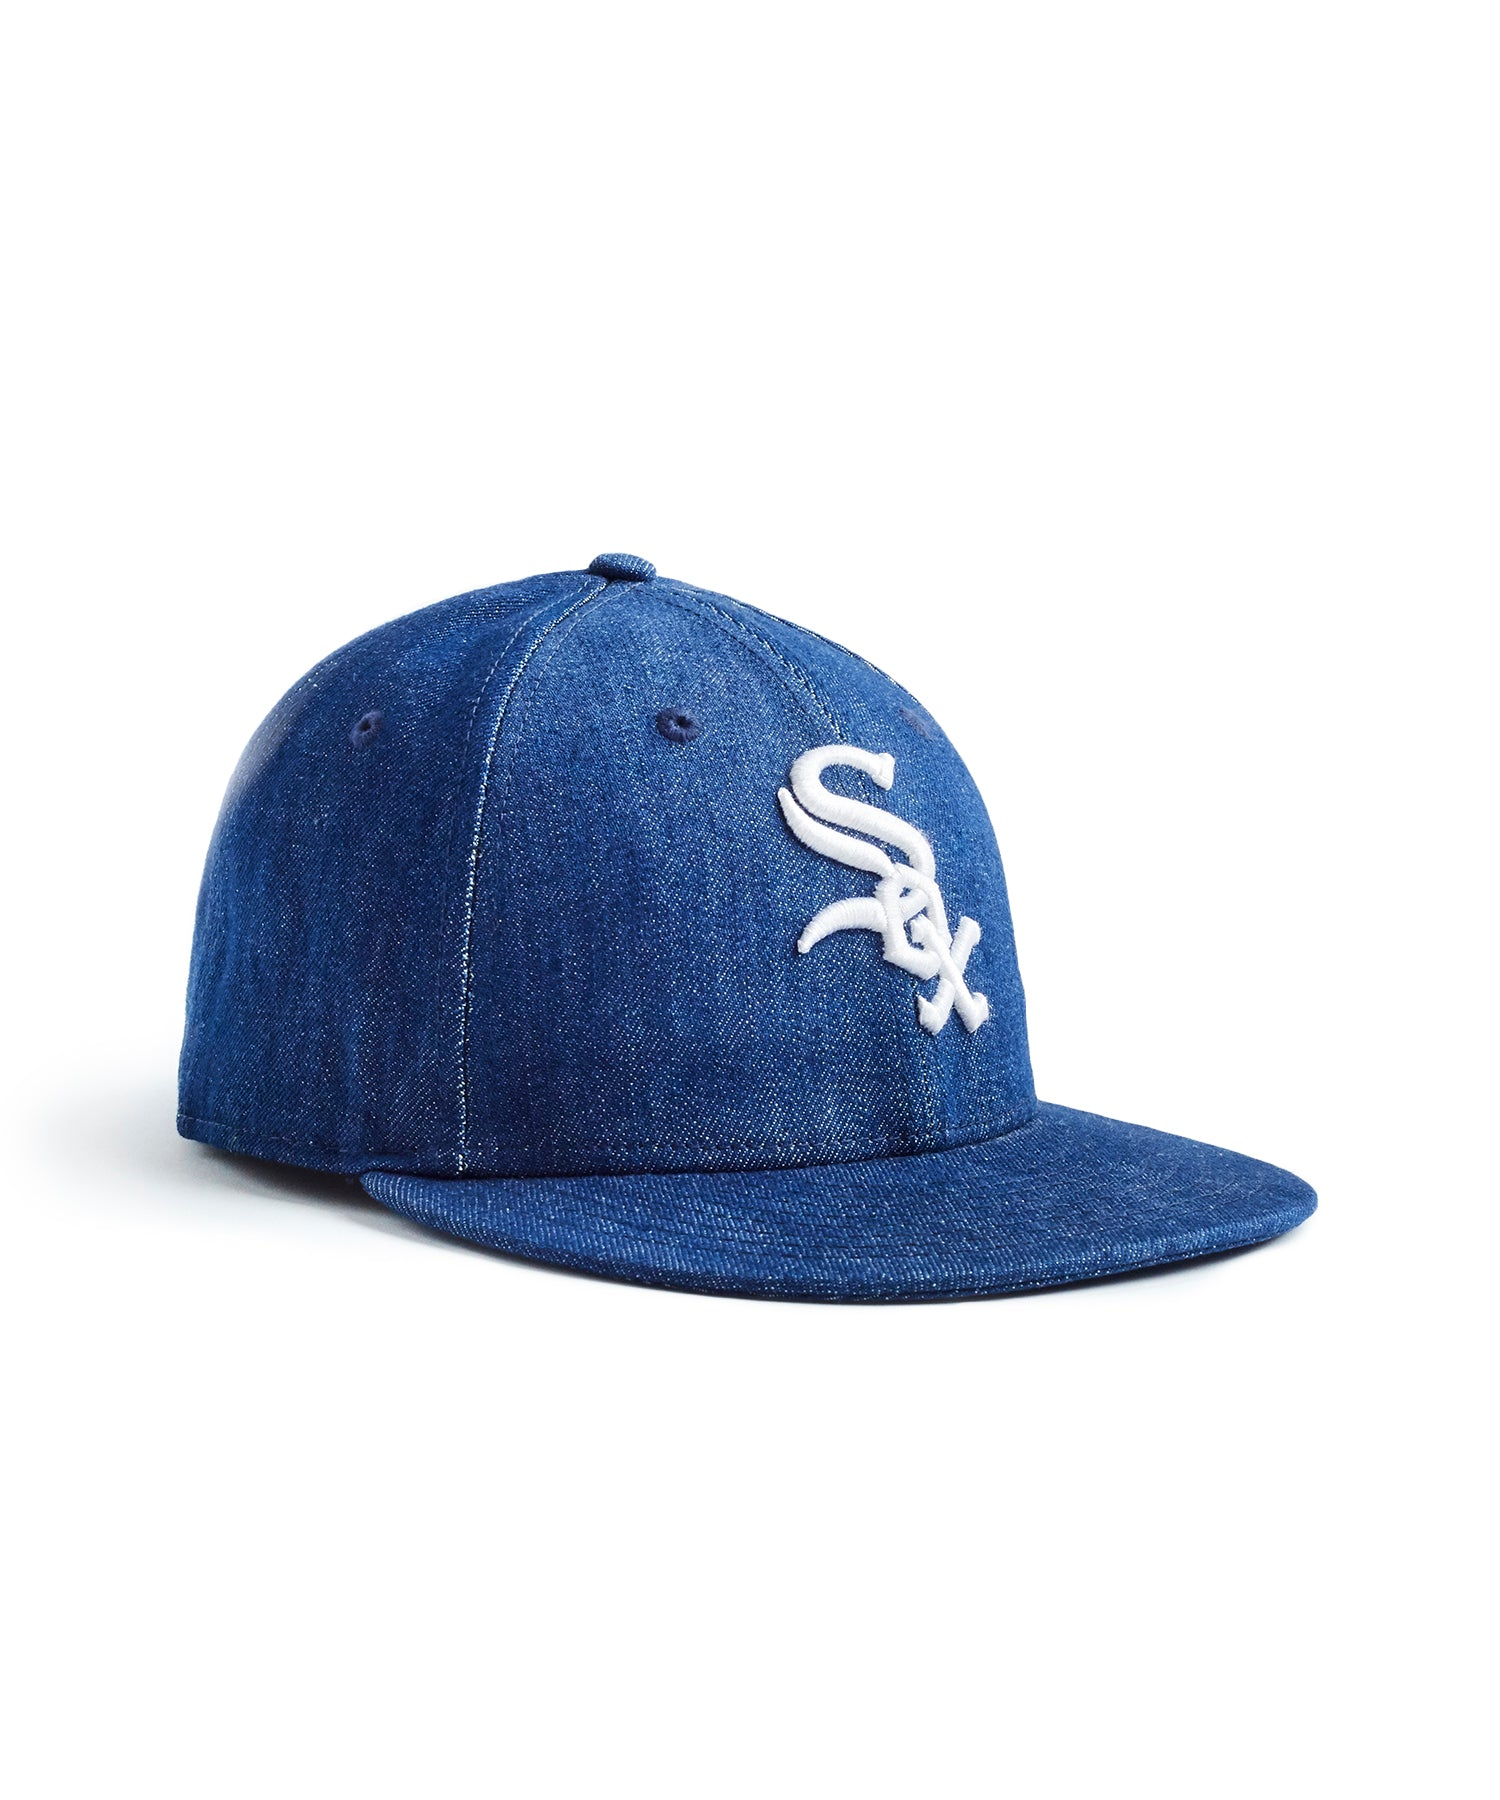 TODD SNYDER + NEW ERA MLB CHICAGO WHITE SOX CAP IN CONE DENIM